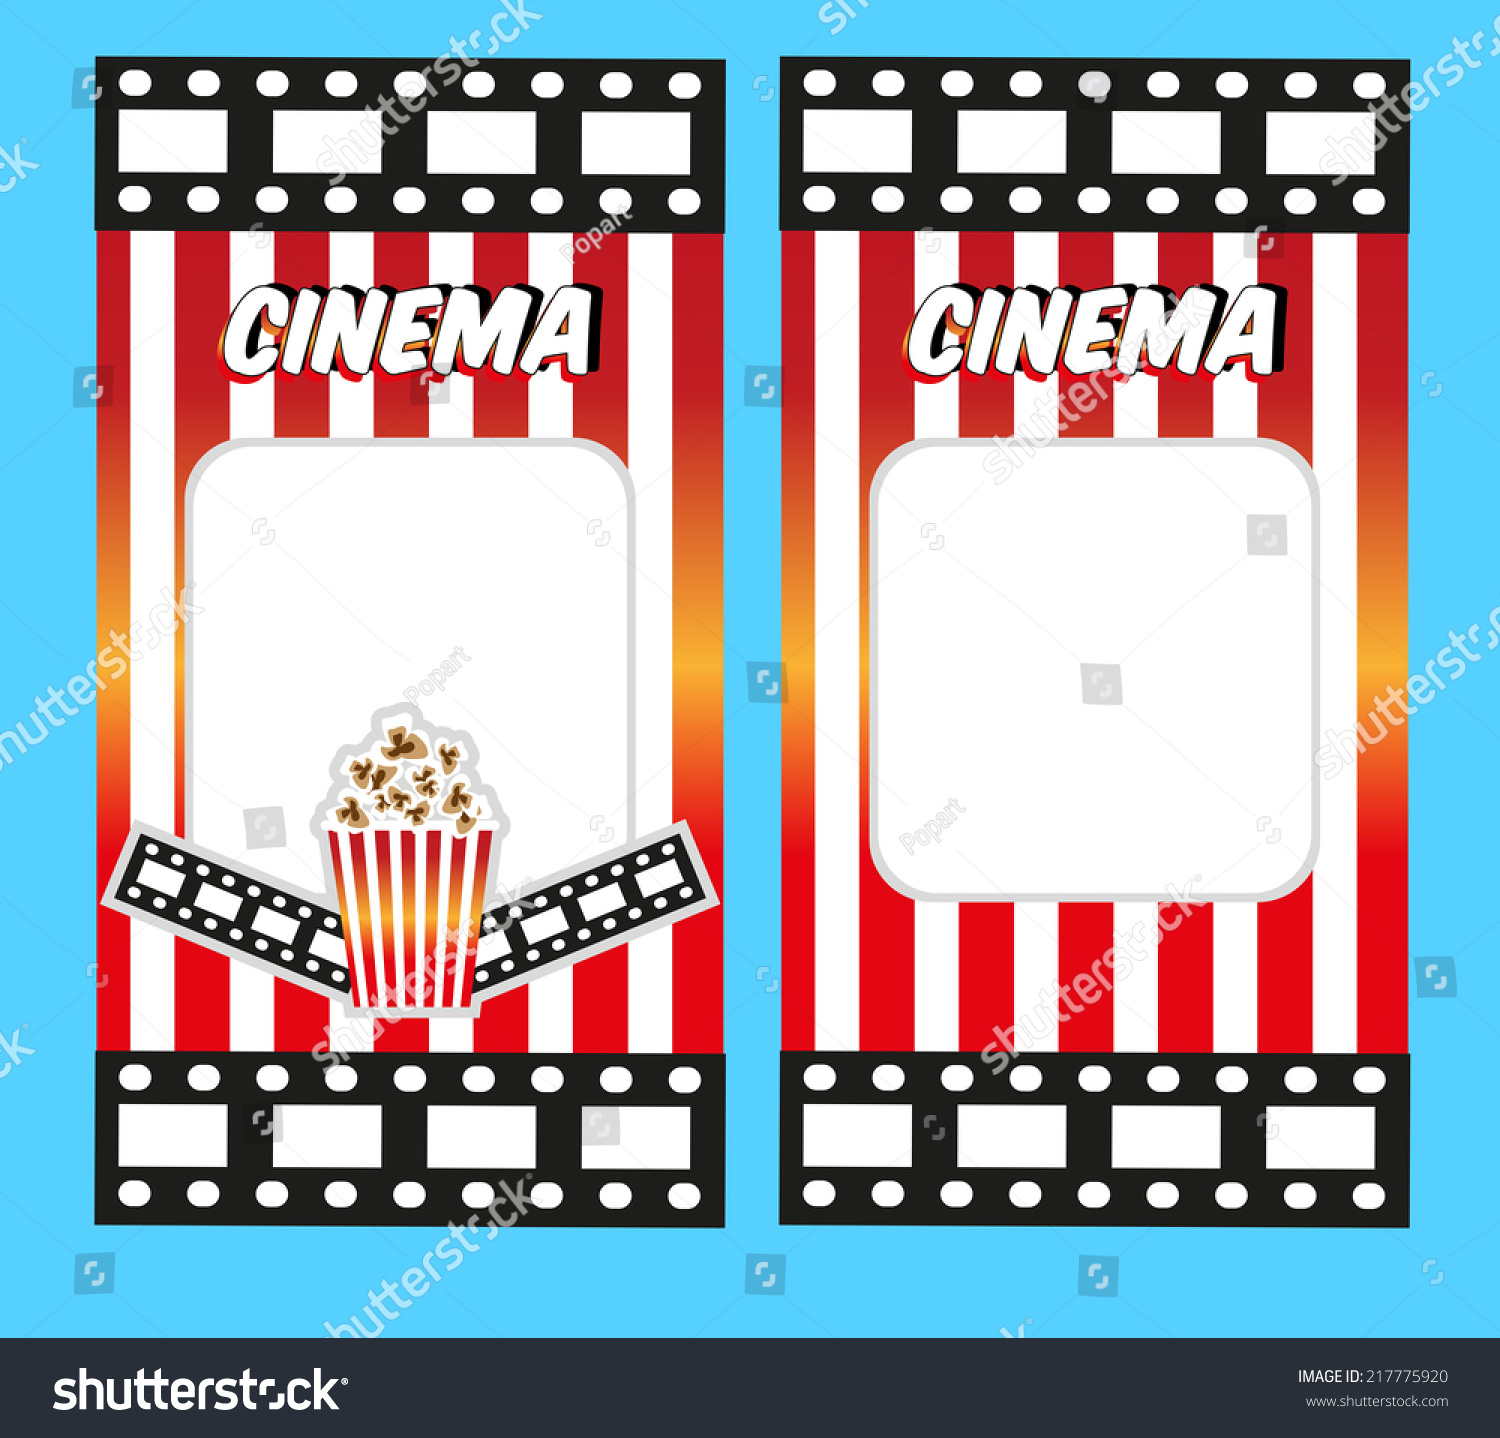 movie theater ticket template – Movie Ticket Template